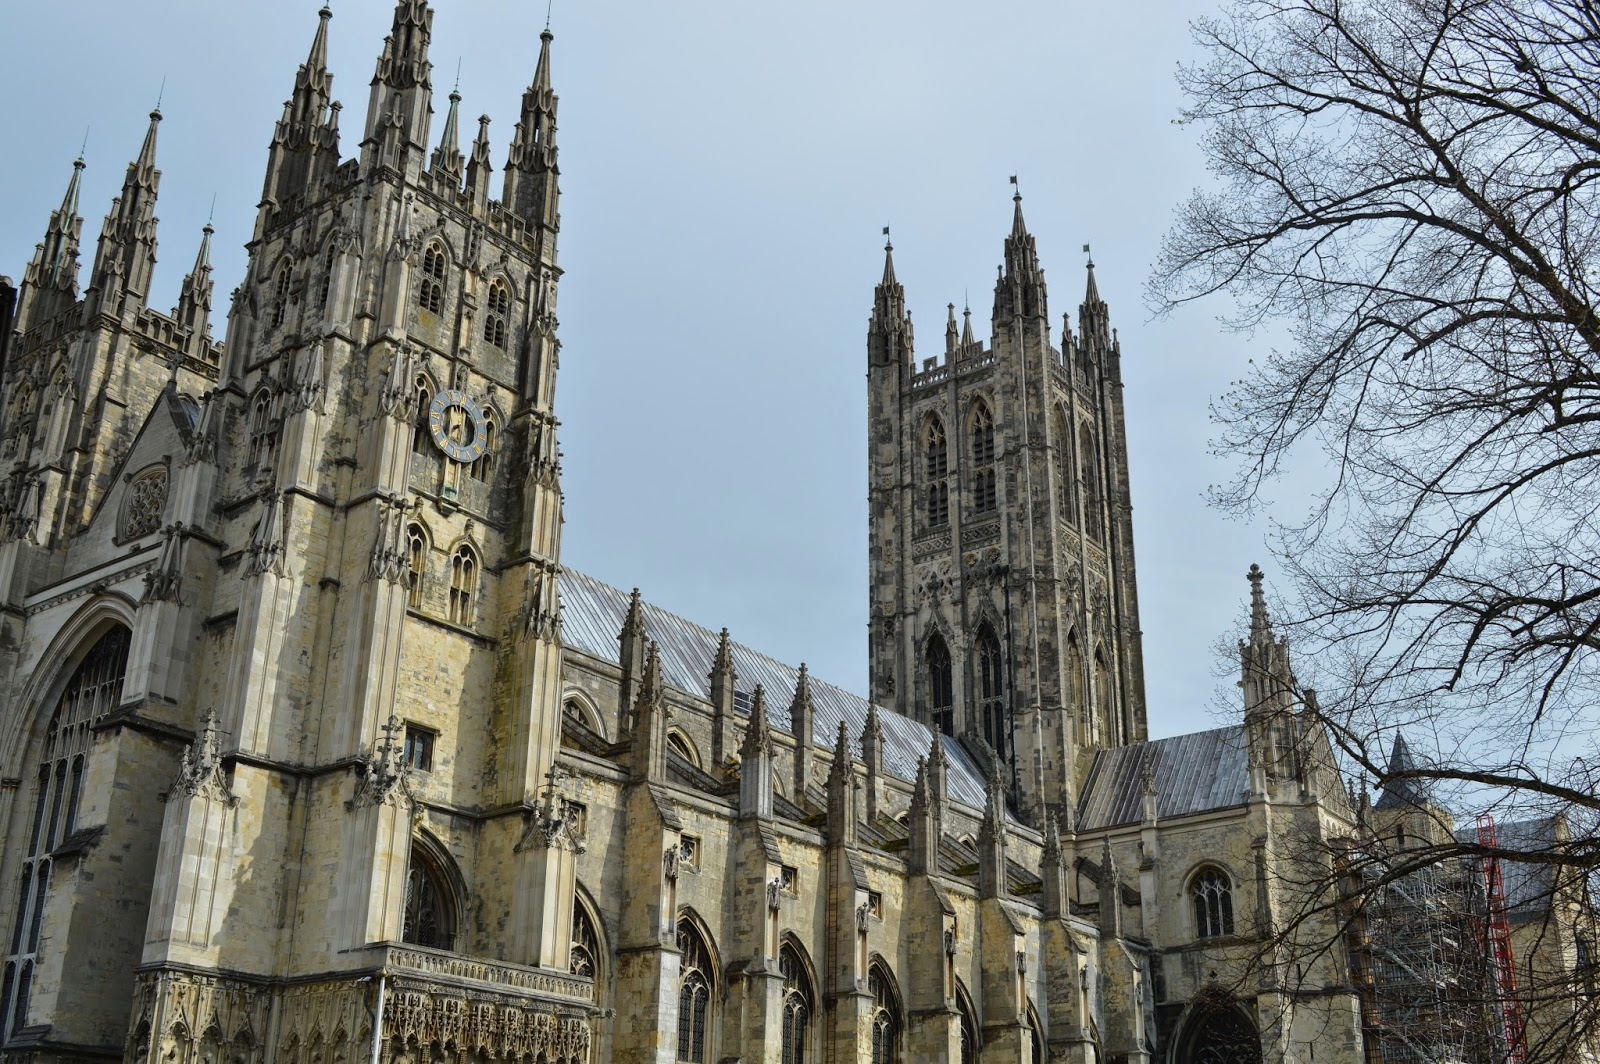 Canterbury Cathedral, Thomas Becket, martyr, Saint Augustine, worship, church, visit, Kent, day trip, religious, old, medieval, stained glass, impressive, big, history, historical, spires, decorated,